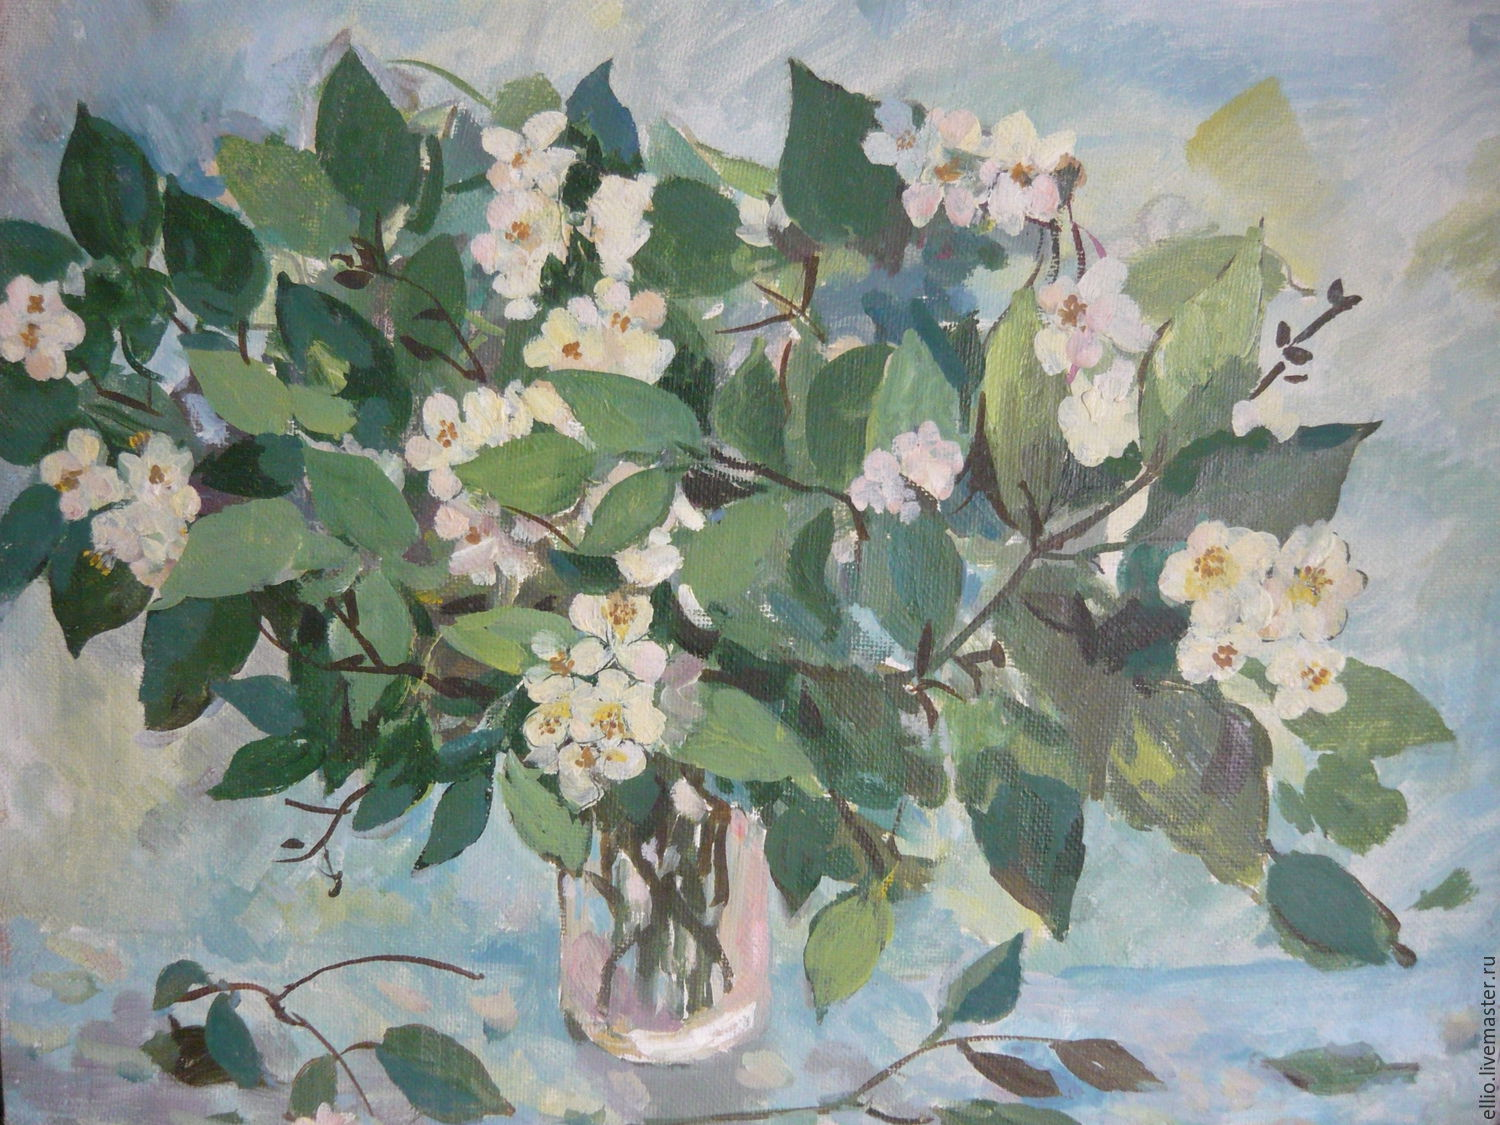 Jasmine Oil Painting On Canvas Shop Online On Livemaster With